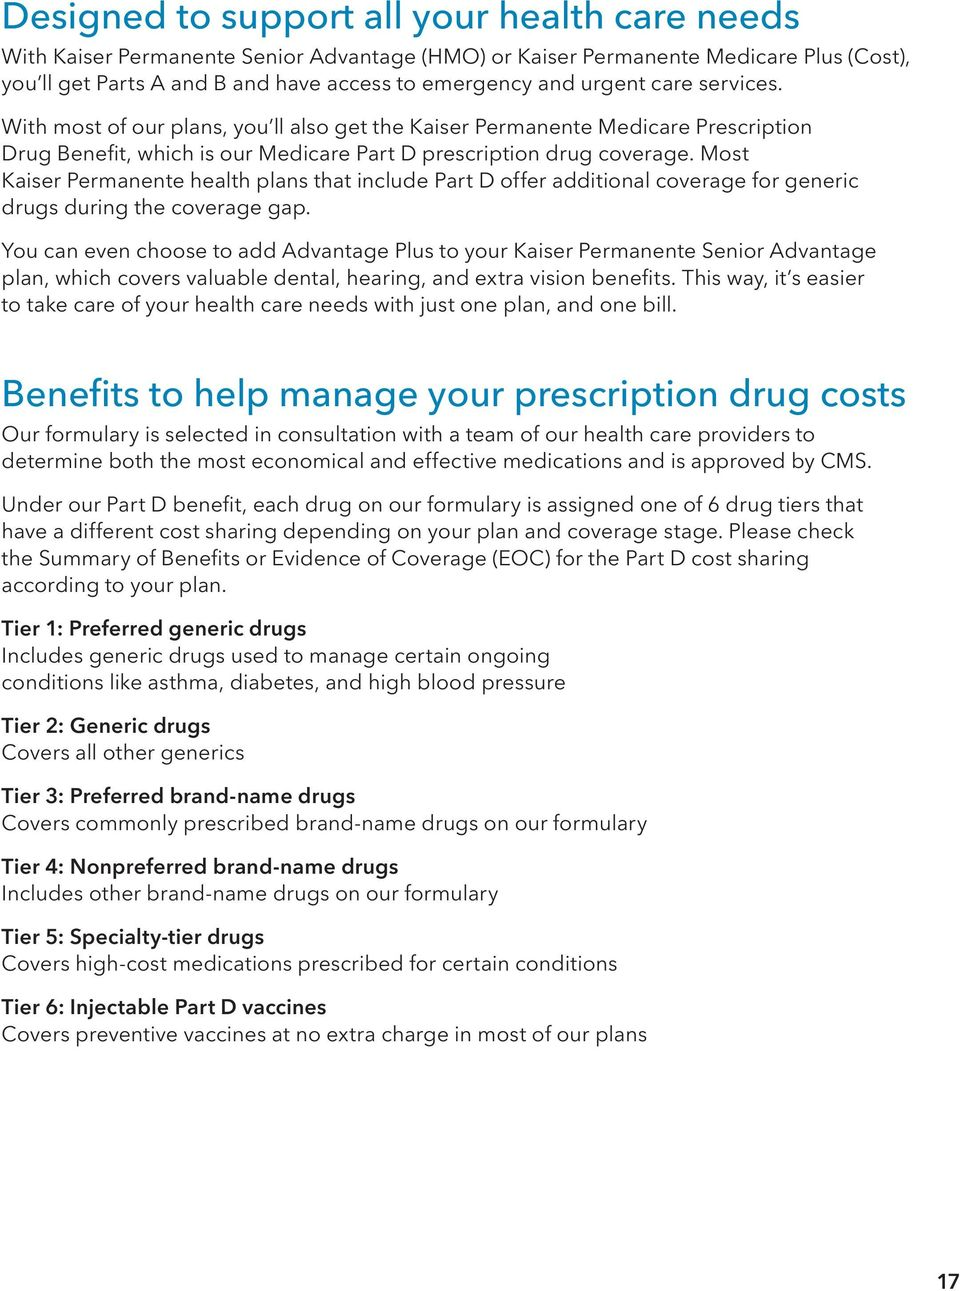 Most Kaiser Permanente health plans that include Part D offer additional coverage for generic drugs during the coverage gap.